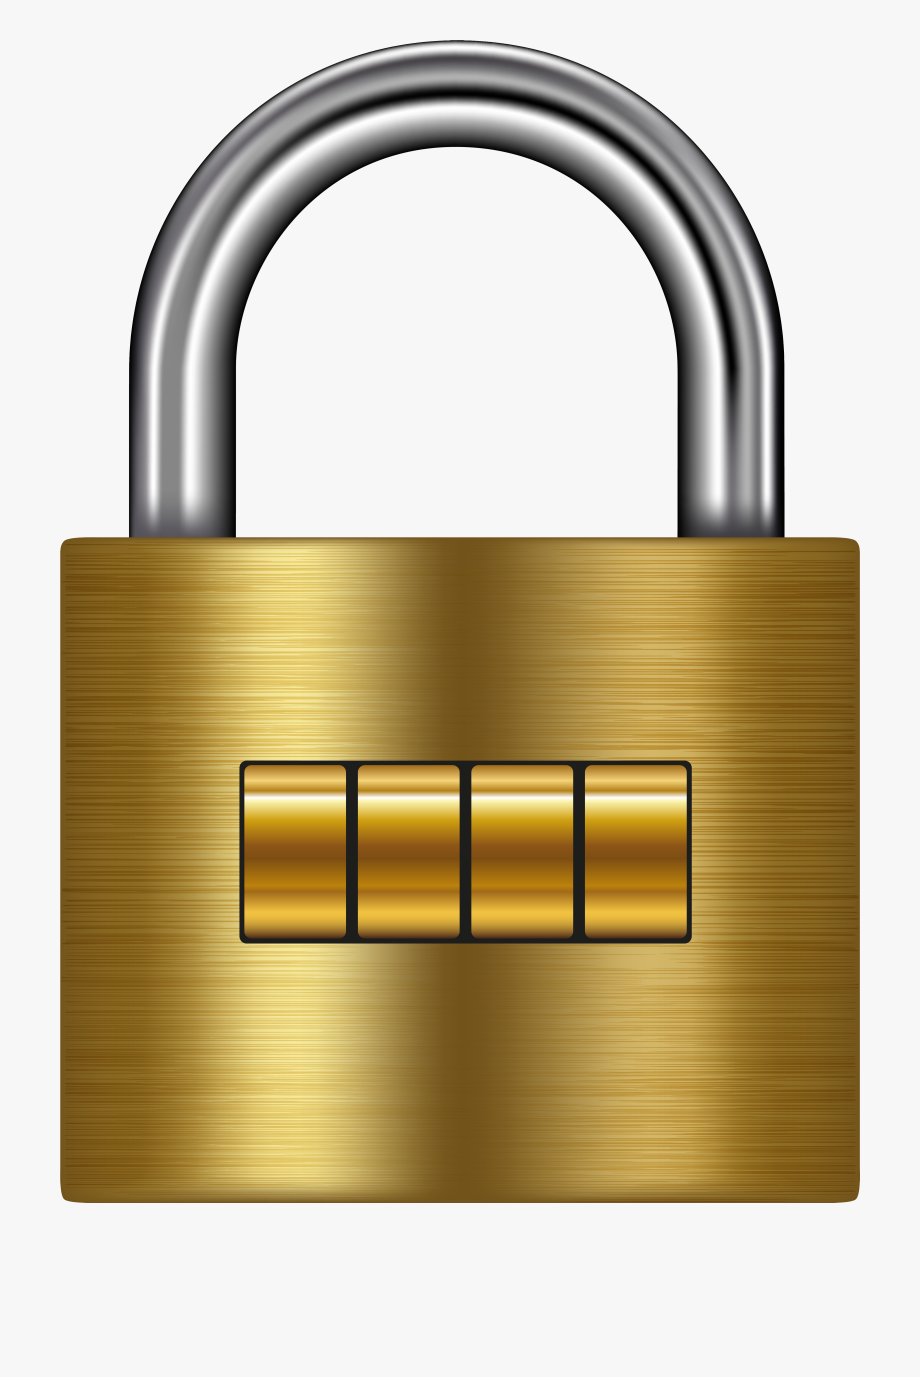 Lock clipart images svg freeuse stock Lock Gold Png Clip Art - 4 Digit Lock Clipart #220673 - Free ... svg freeuse stock